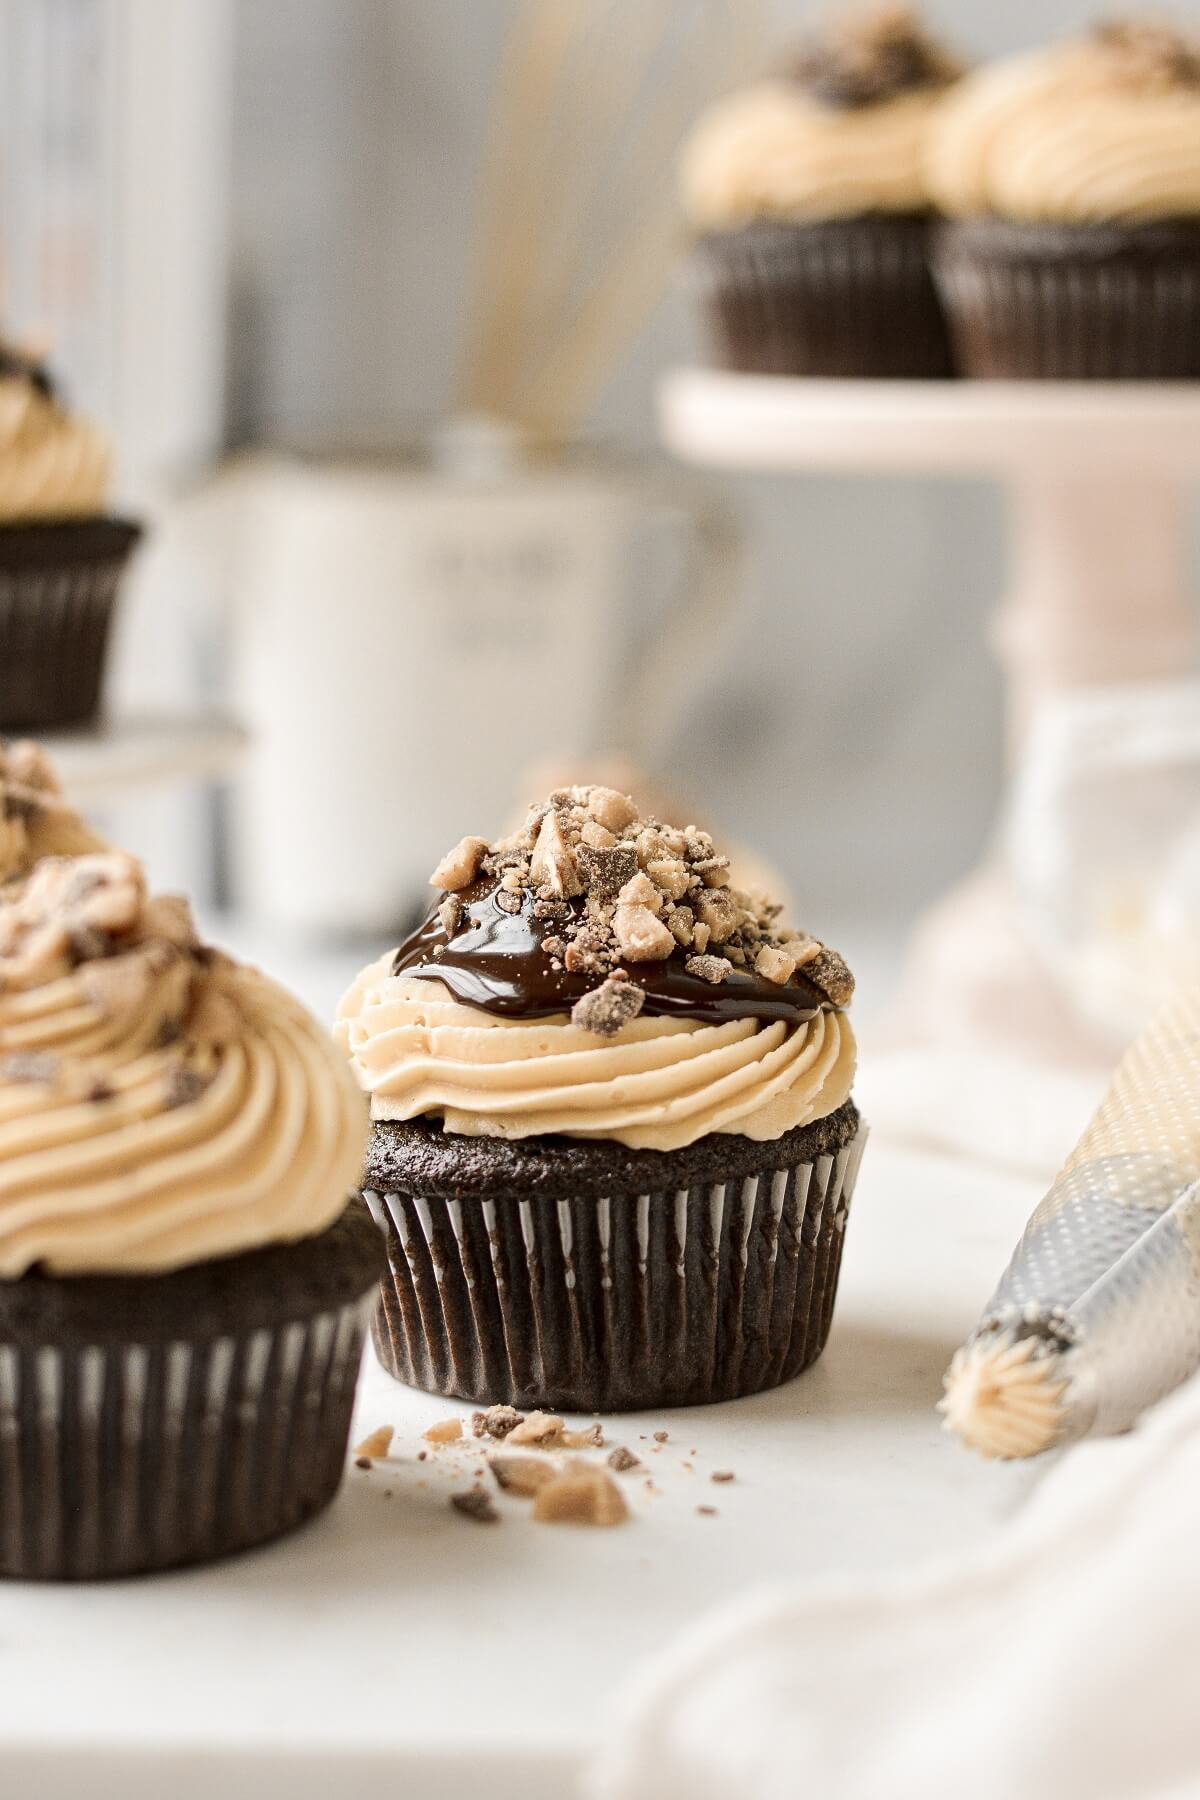 Chocolate truffle cupcakes, filled with ganache, topped with salted caramel buttercream and toffee bits.